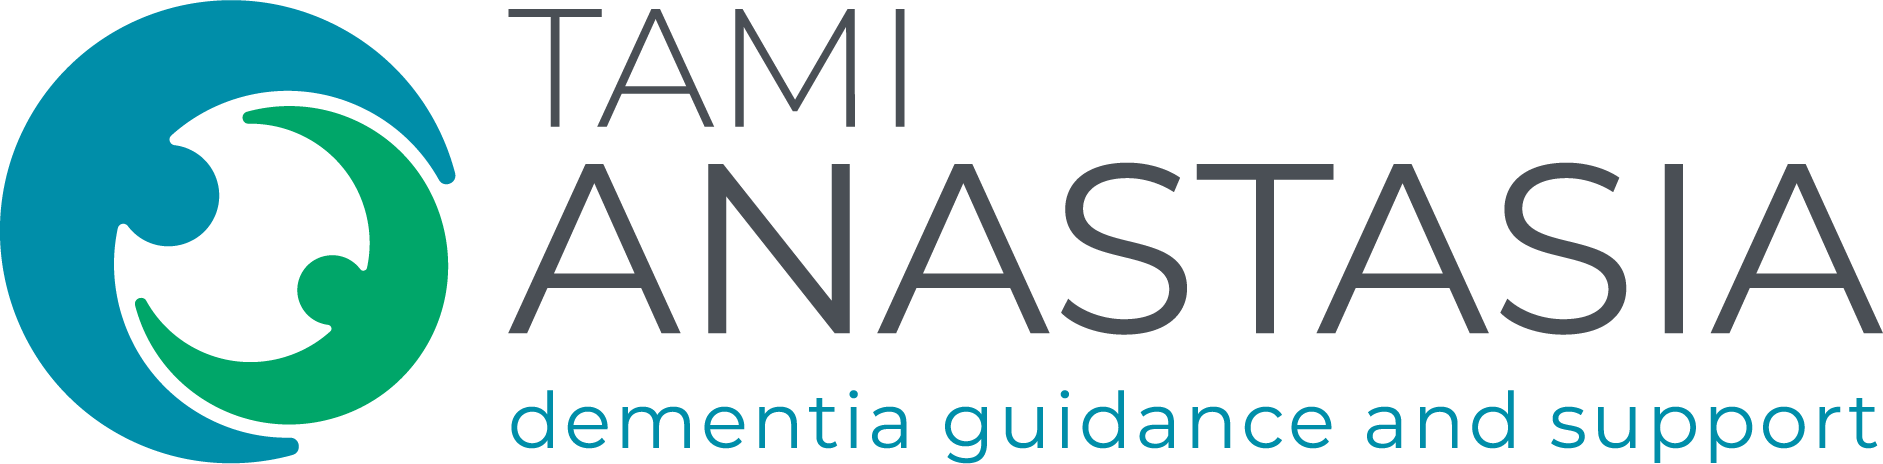 Dementia Guidance and Support | Tami Anastasia